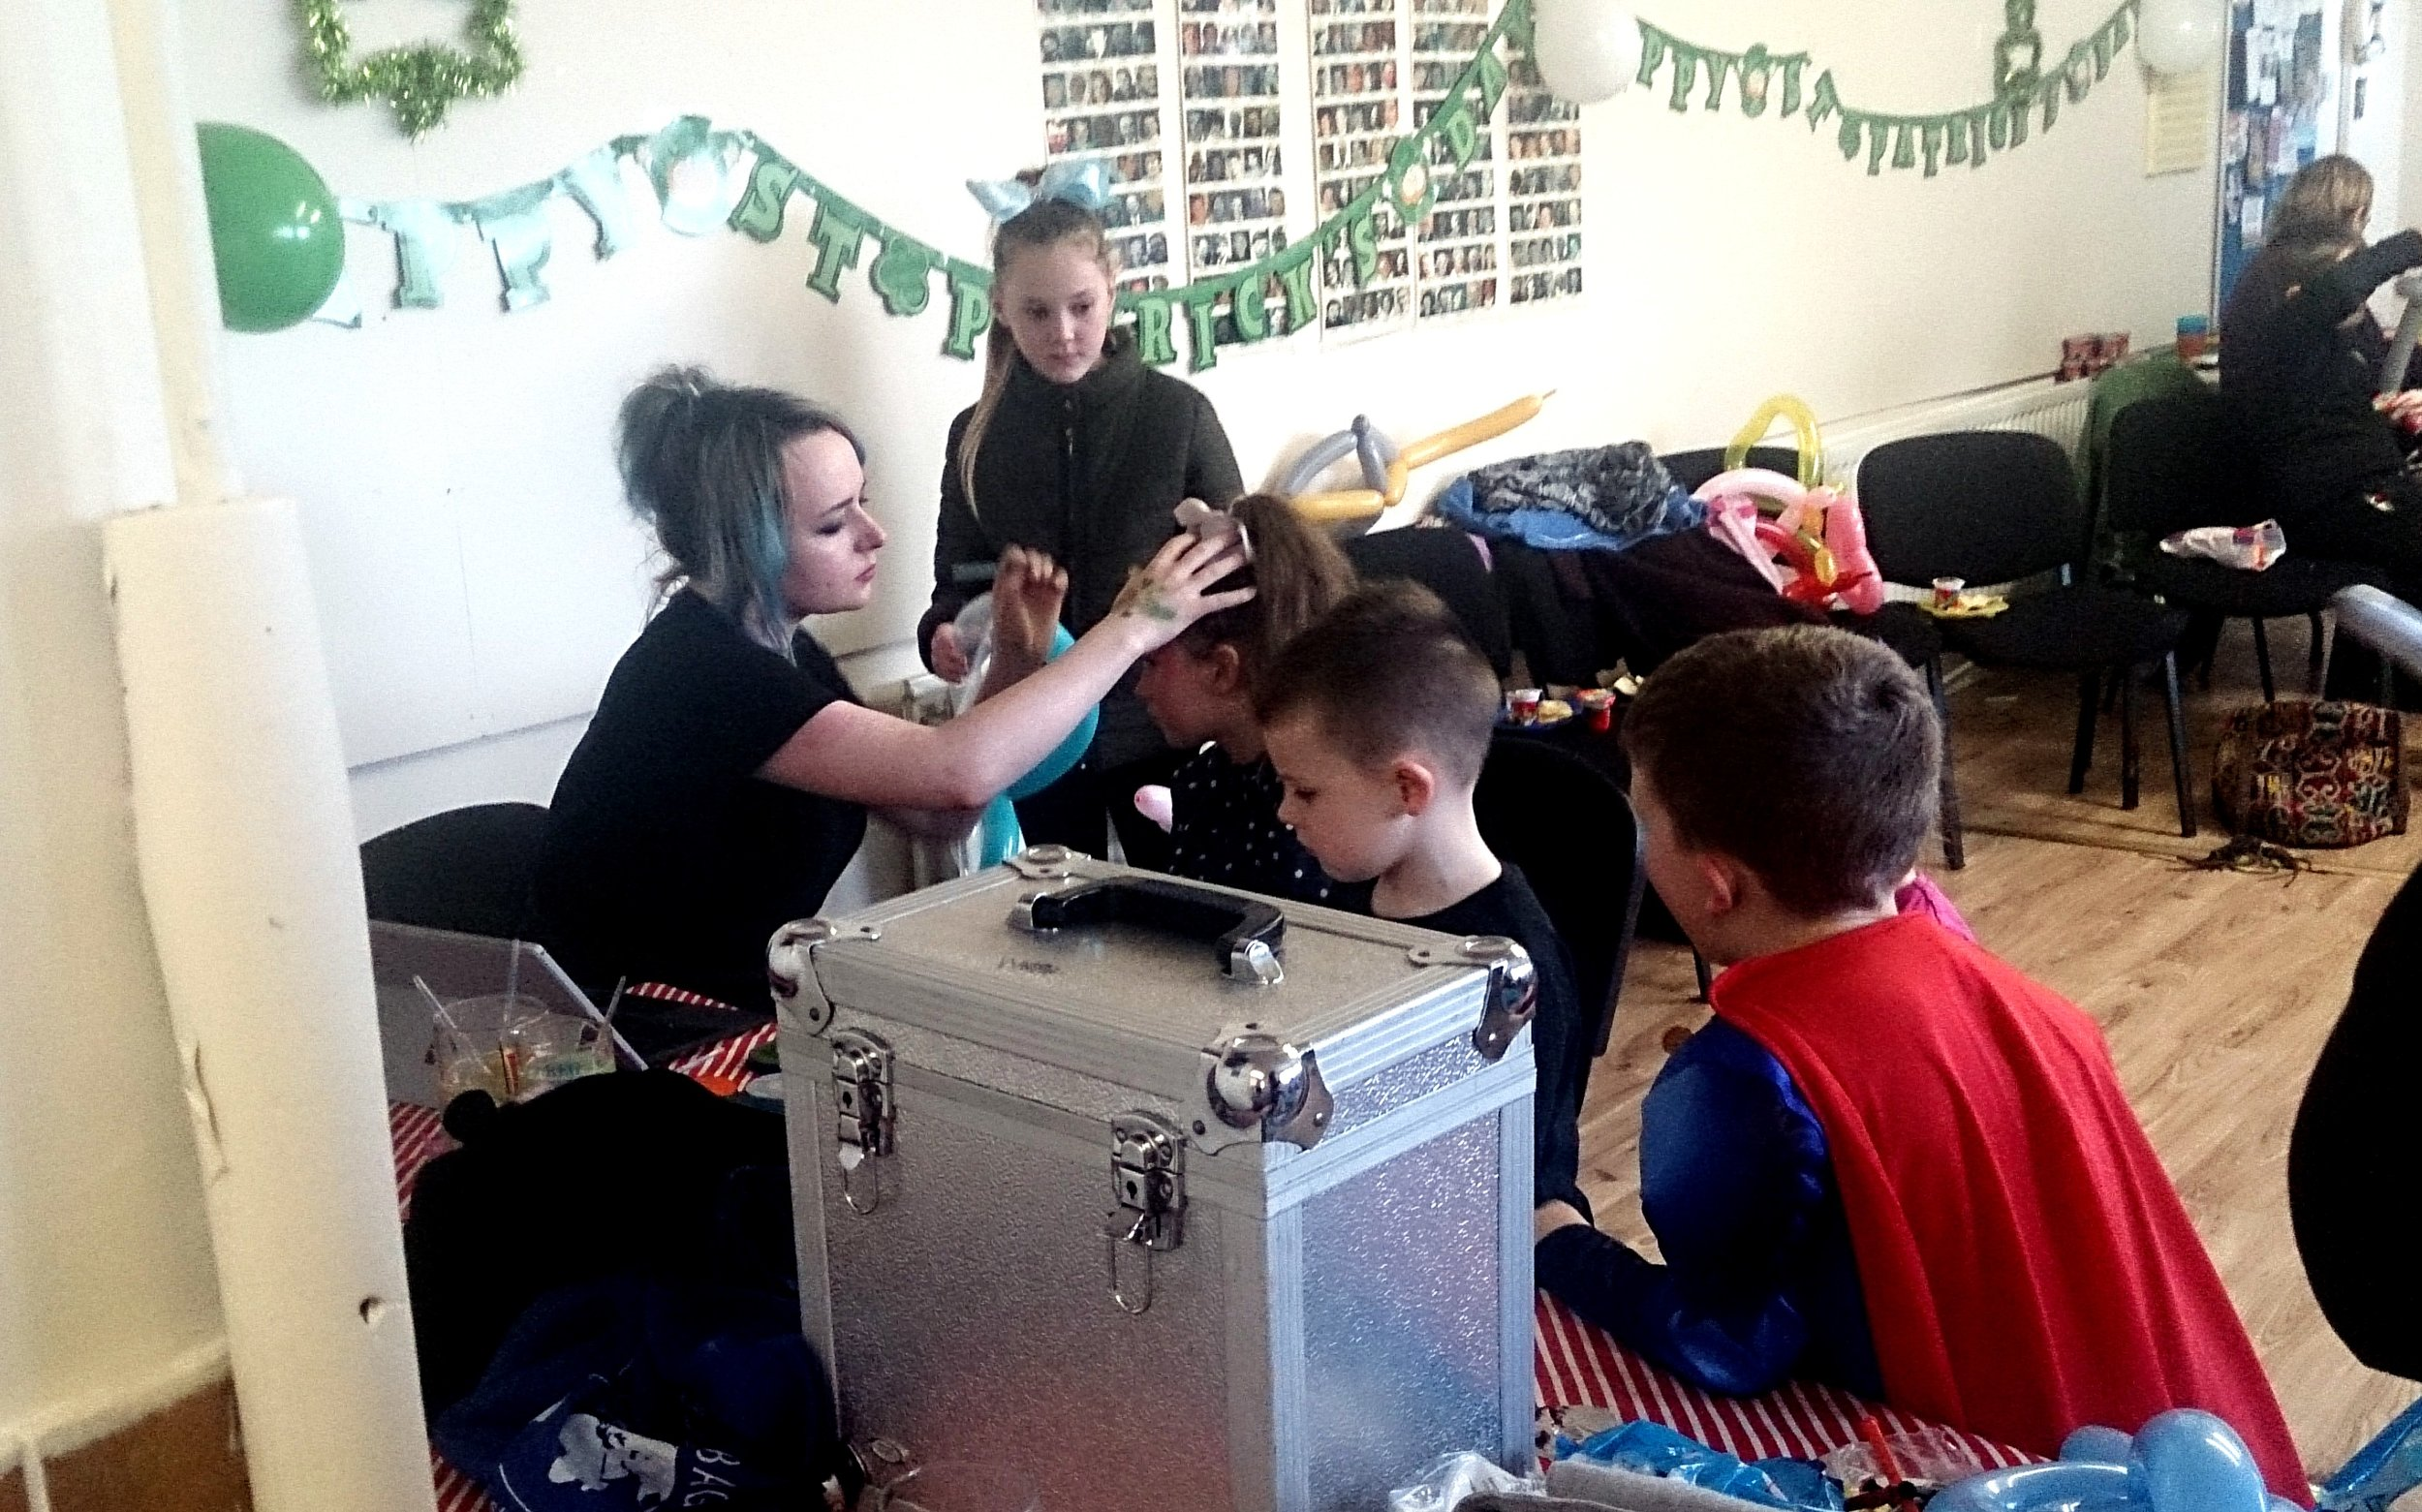 st pats srg face painting.JPG